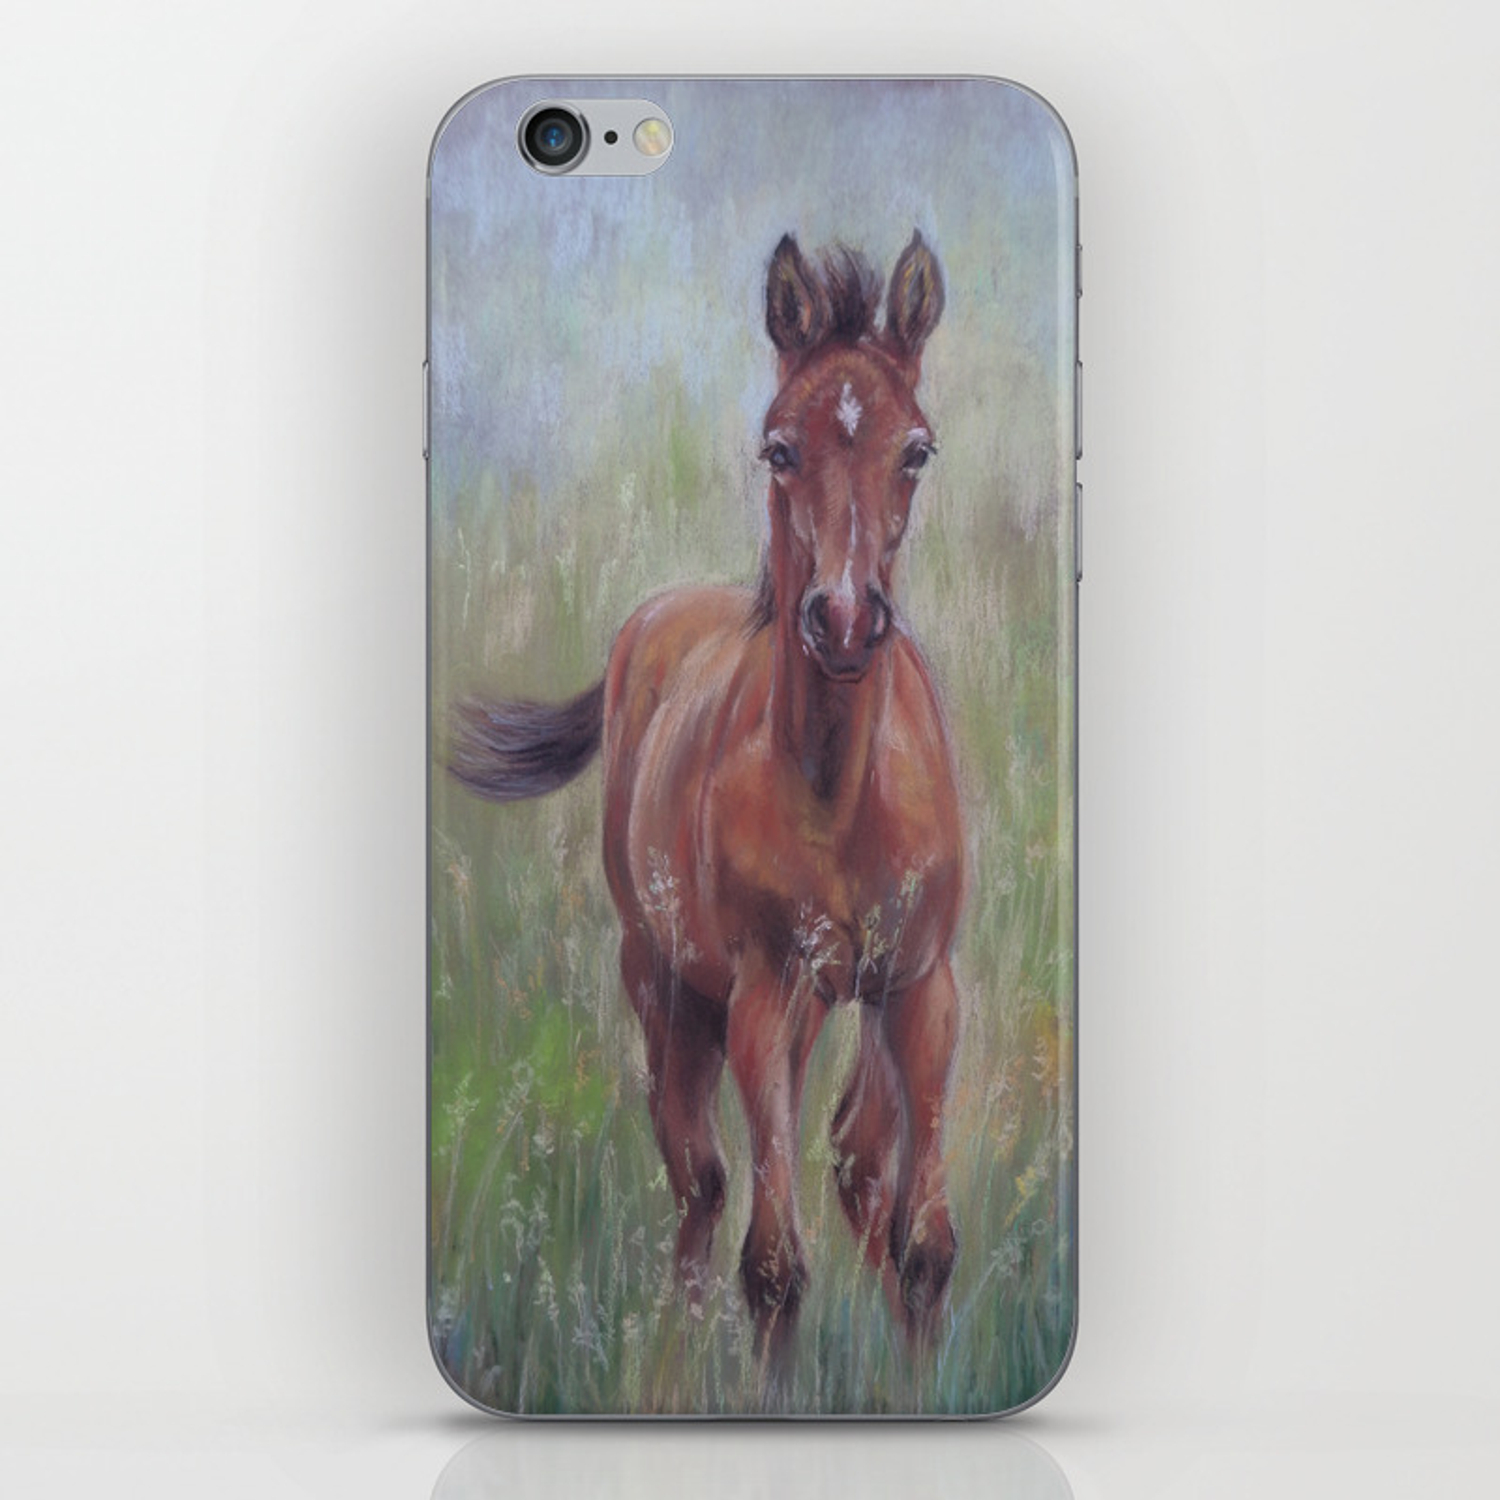 Baby Horse Foal In The Spring Meadow Cute Horse Portrait Pastel Drawing Iphone Skin By Canisart Society6